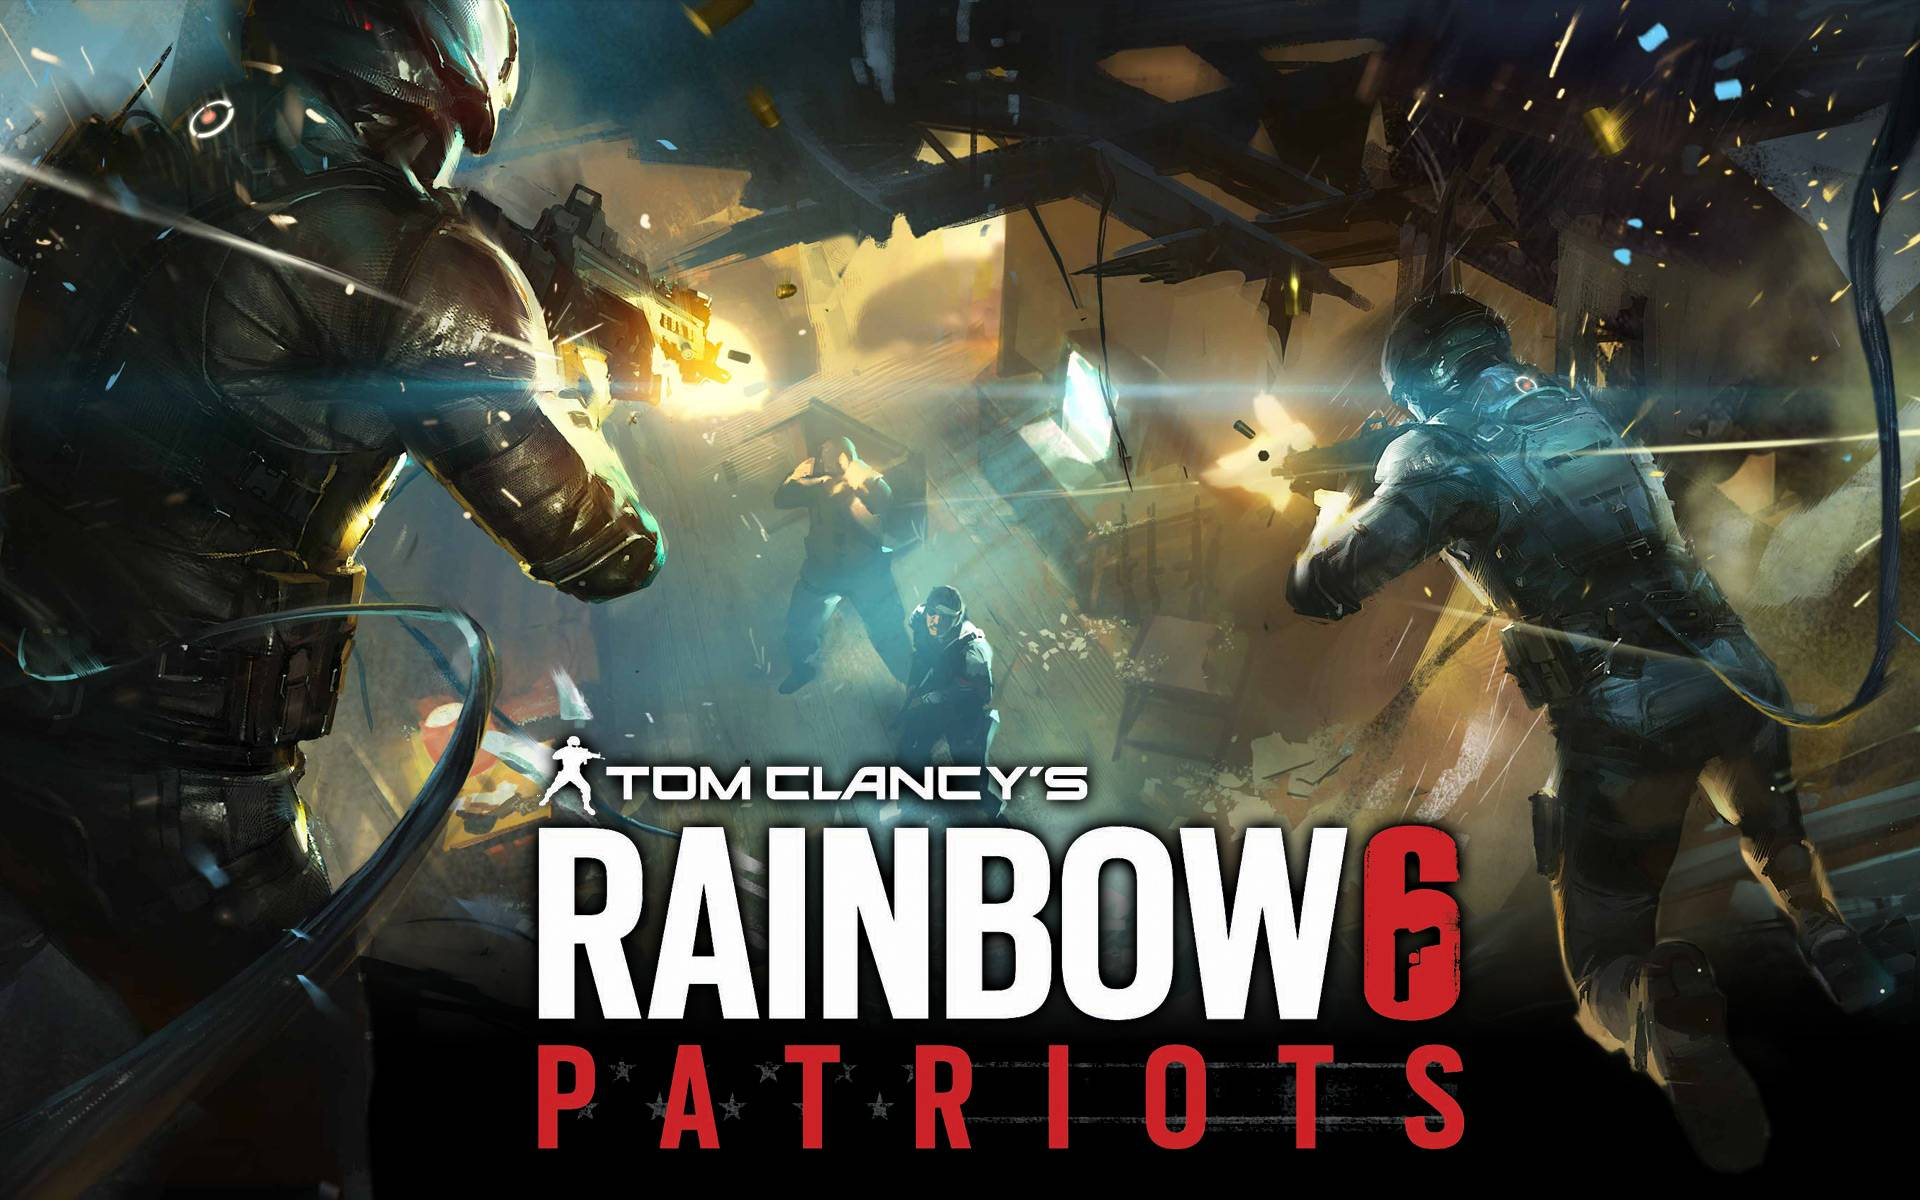 Tom-Clancys-Rainbow-6-Patriots-hd-Wallpaper